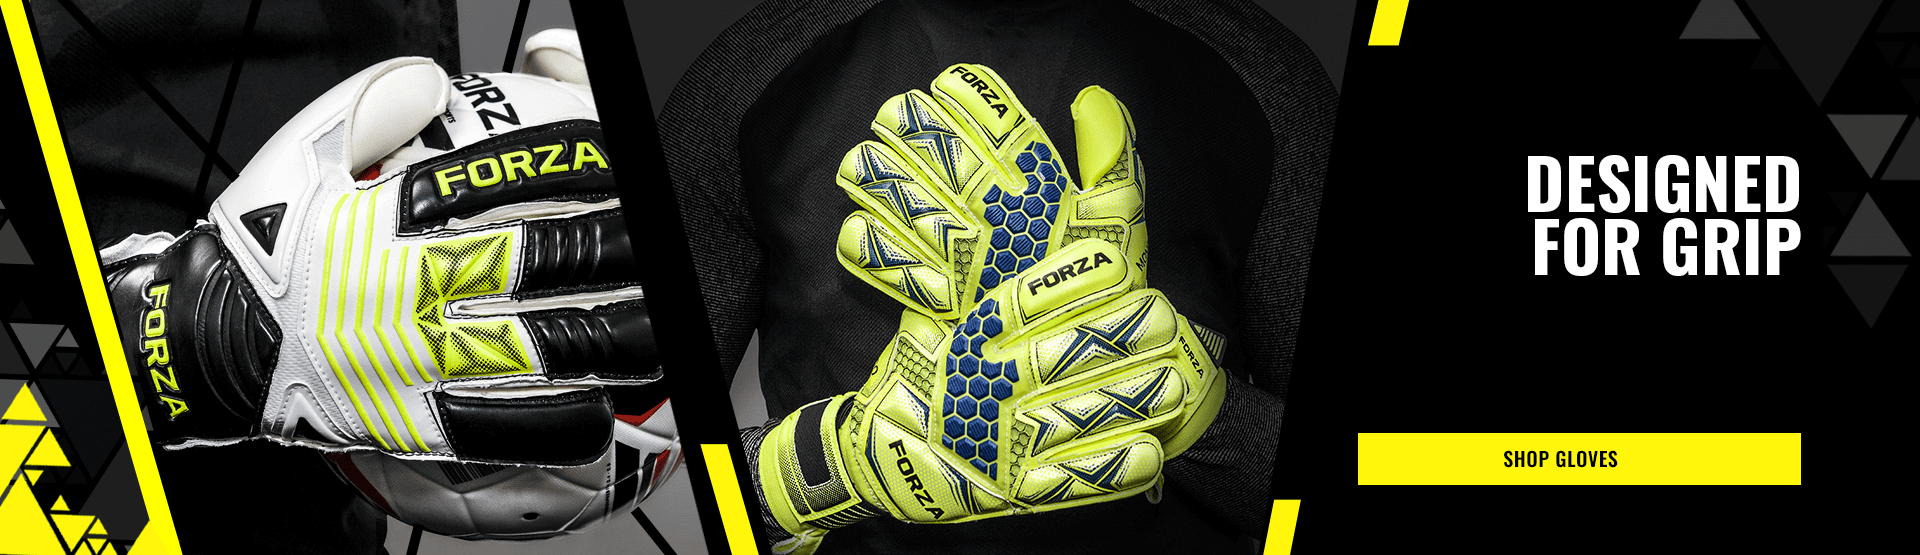 Goalkeeping - Shop Gloves